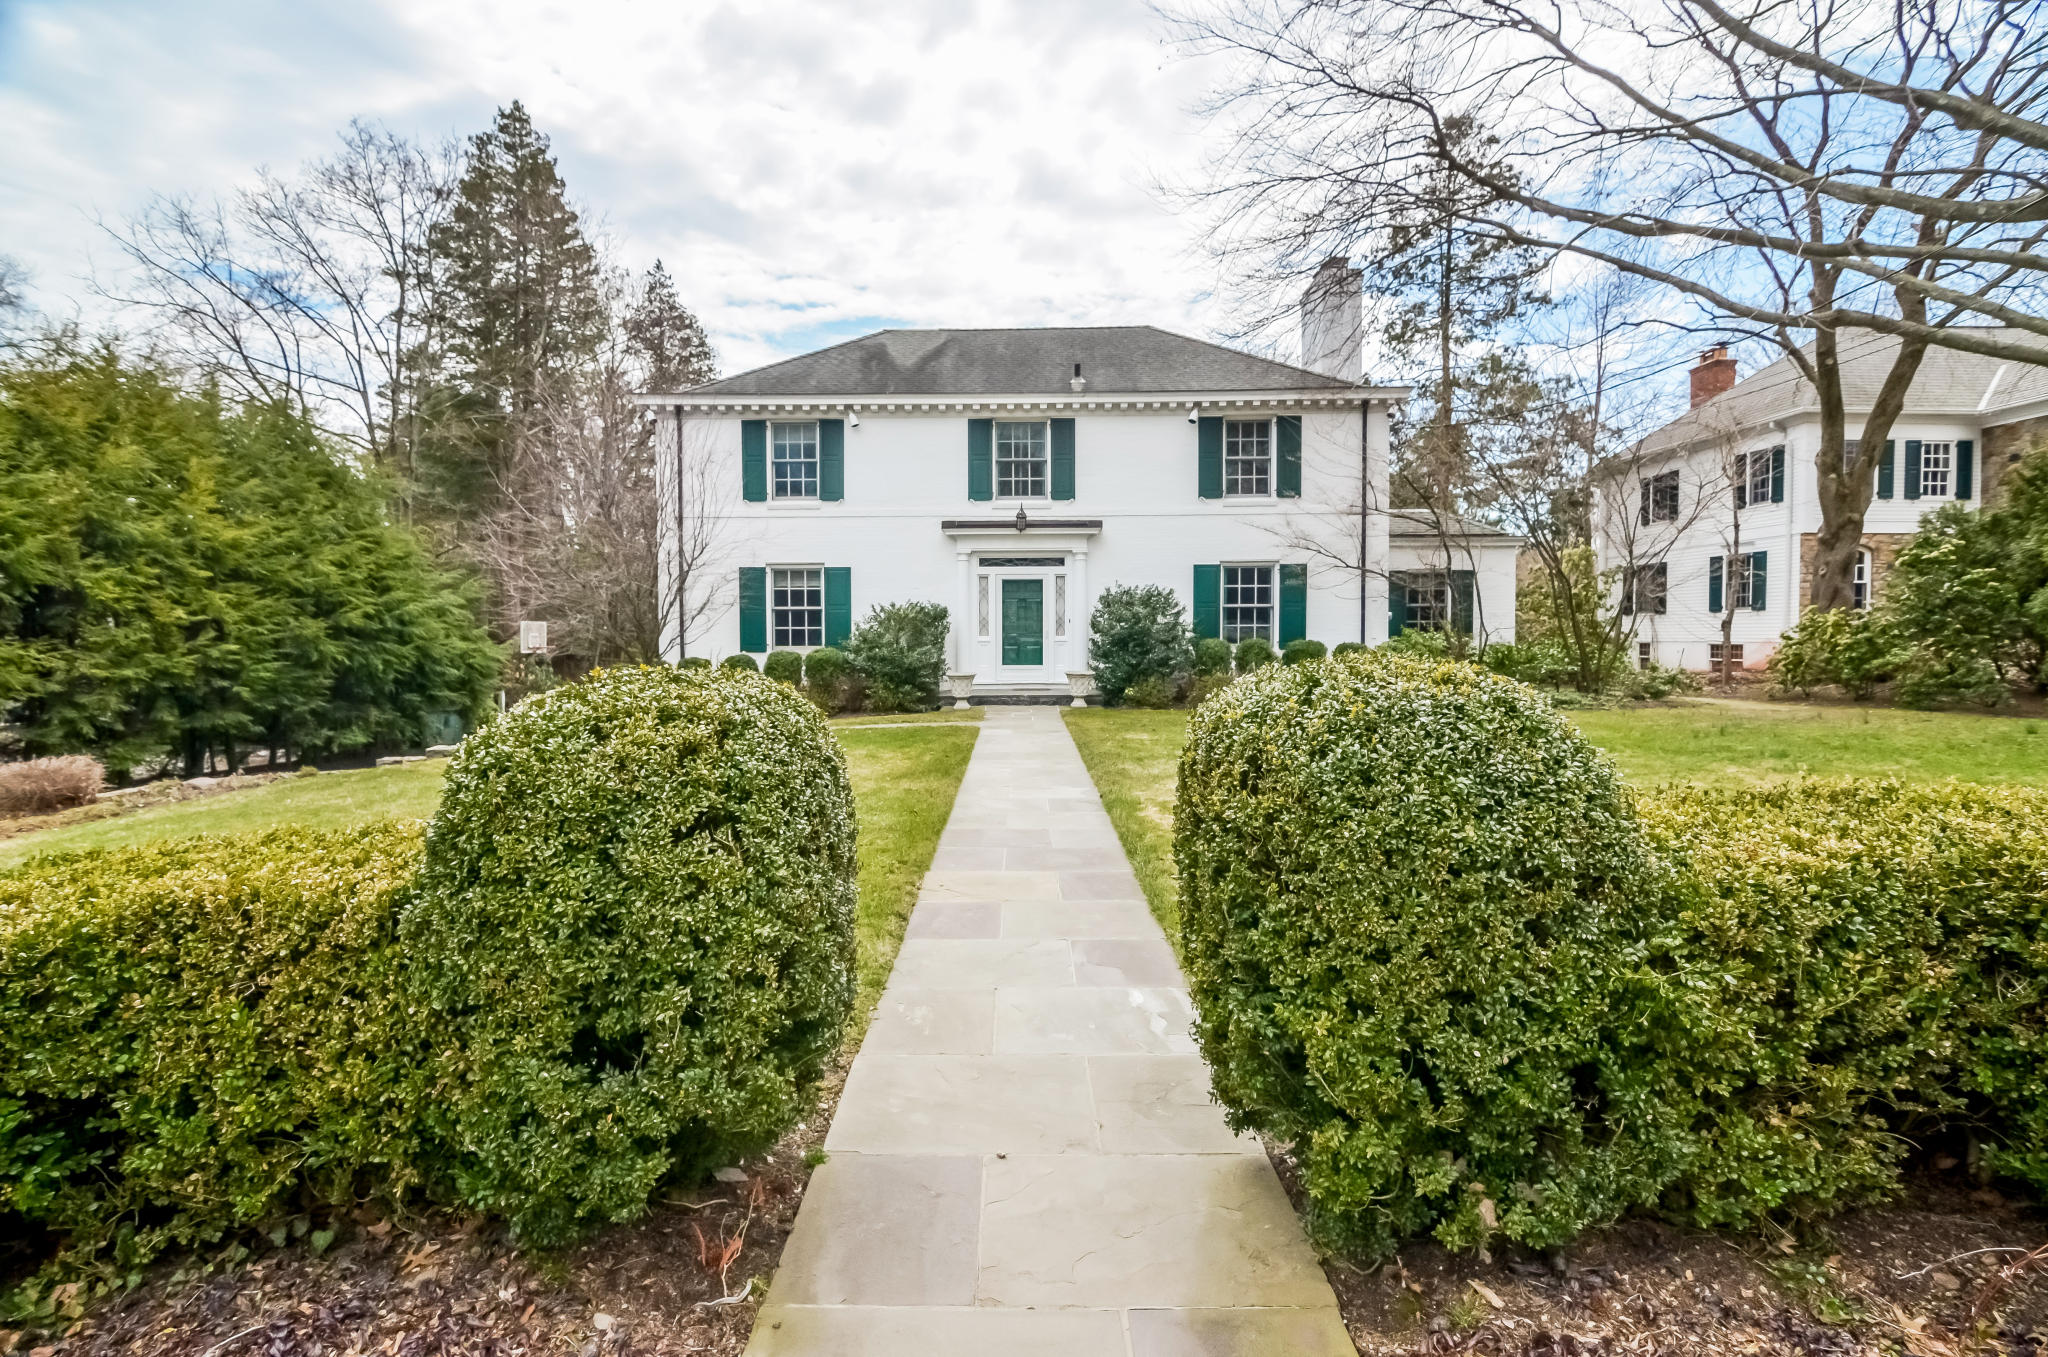 31 Bradford Rd, Scarsdale, NY 10583 - Recently Sold | Trulia